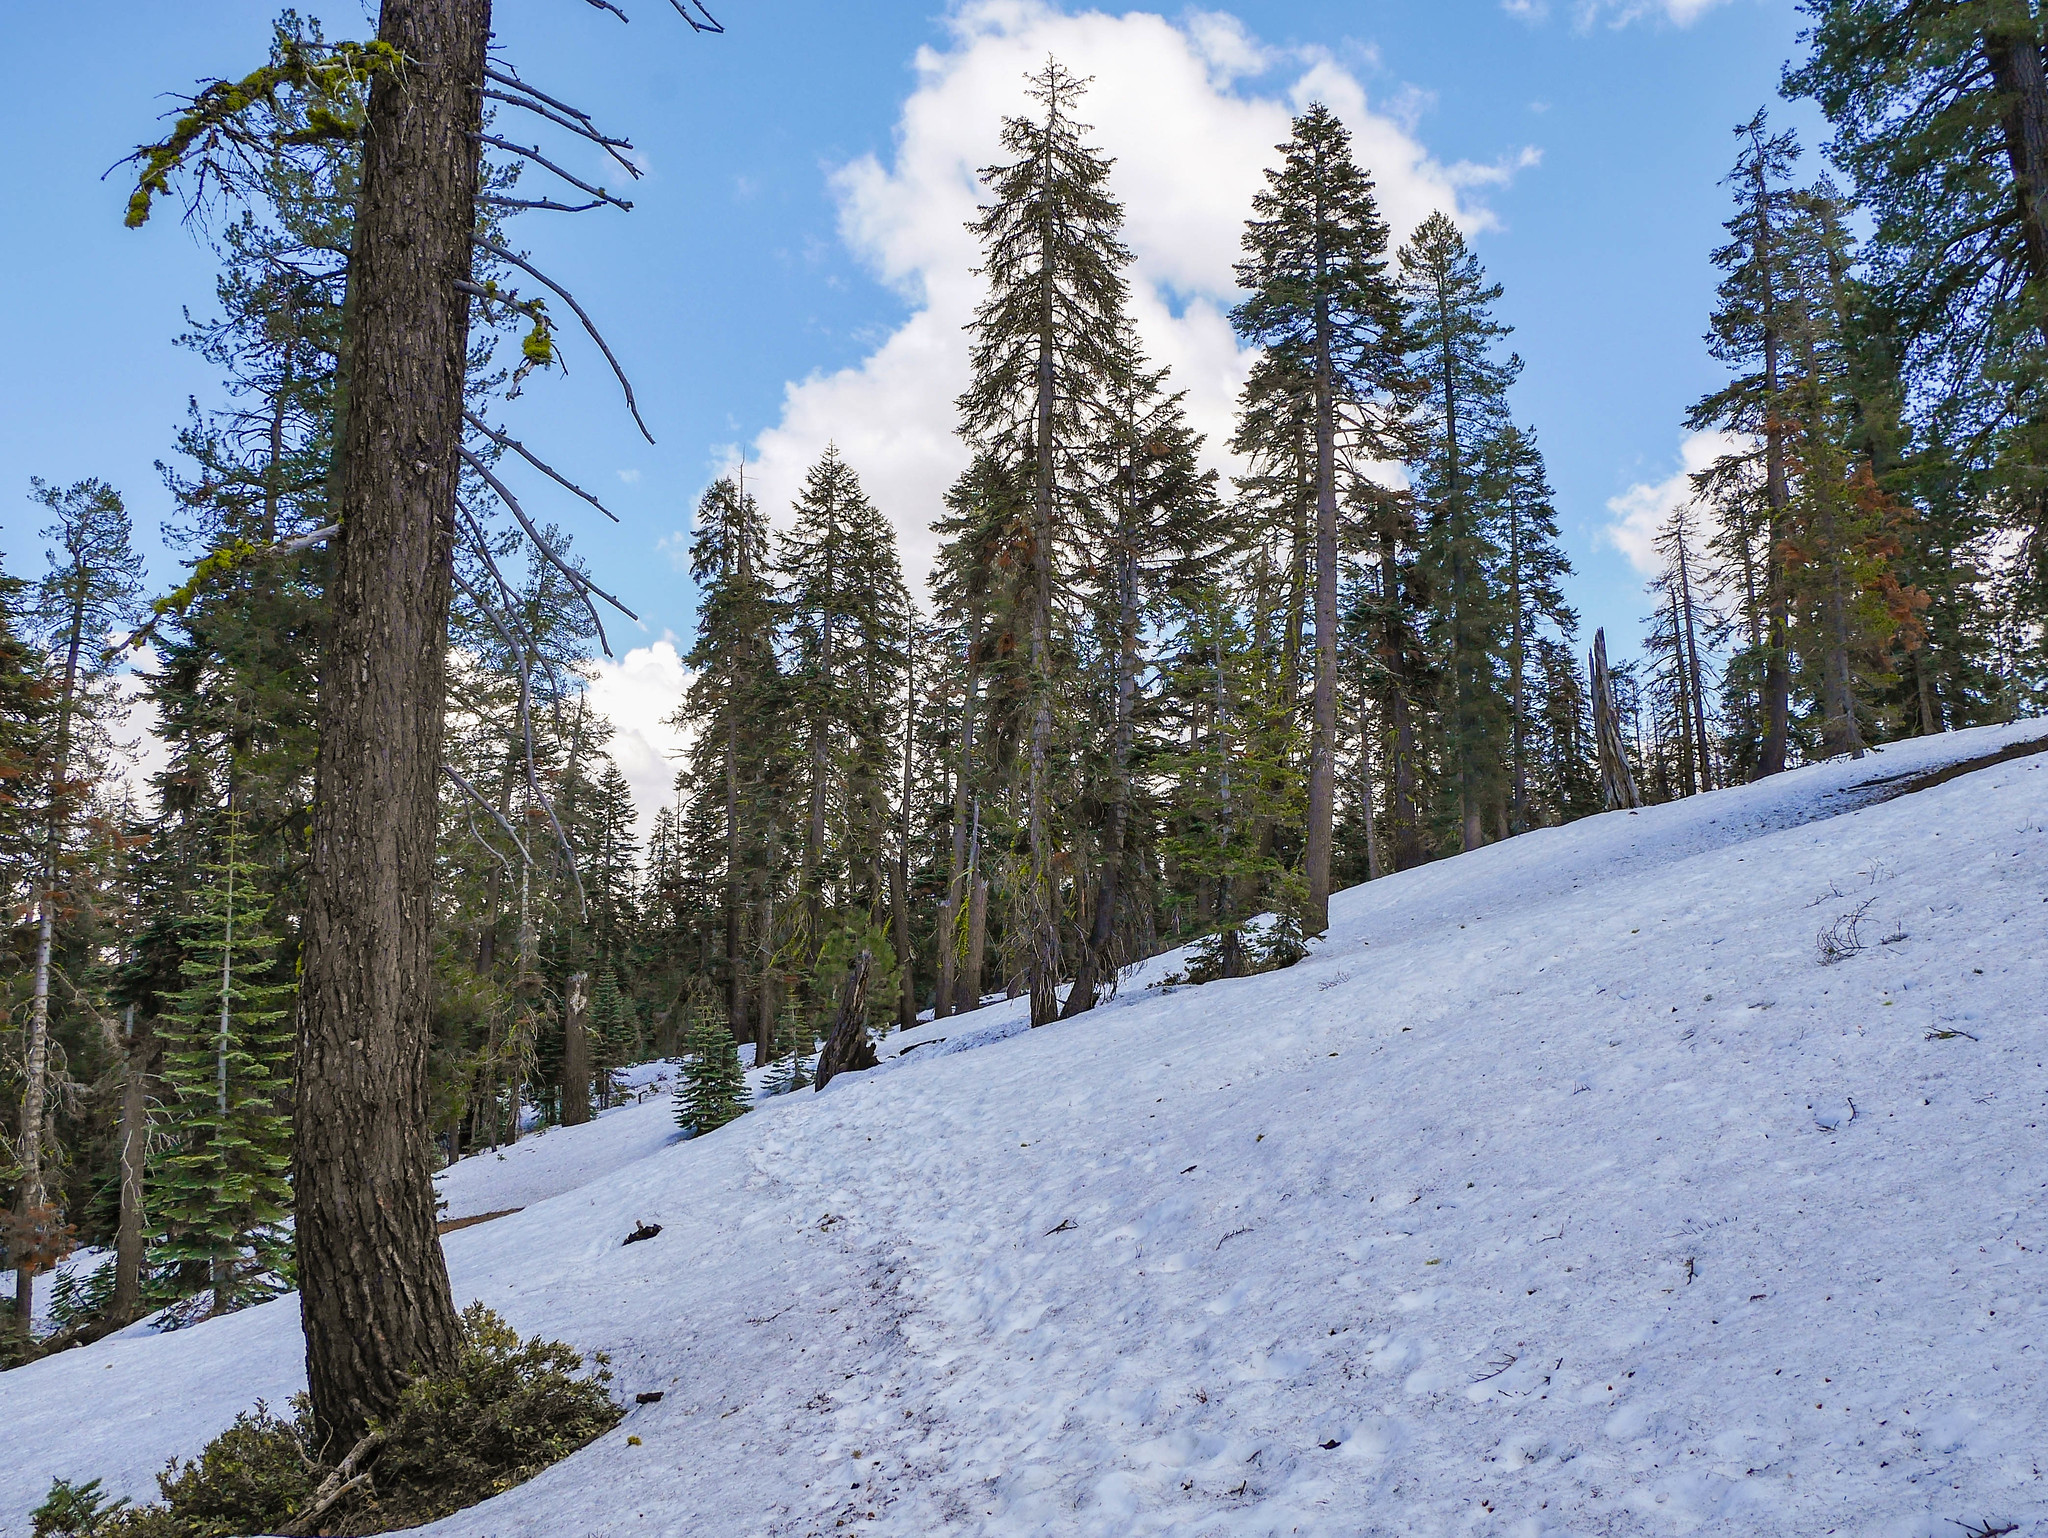 Taft Point trail was 100% snow covered